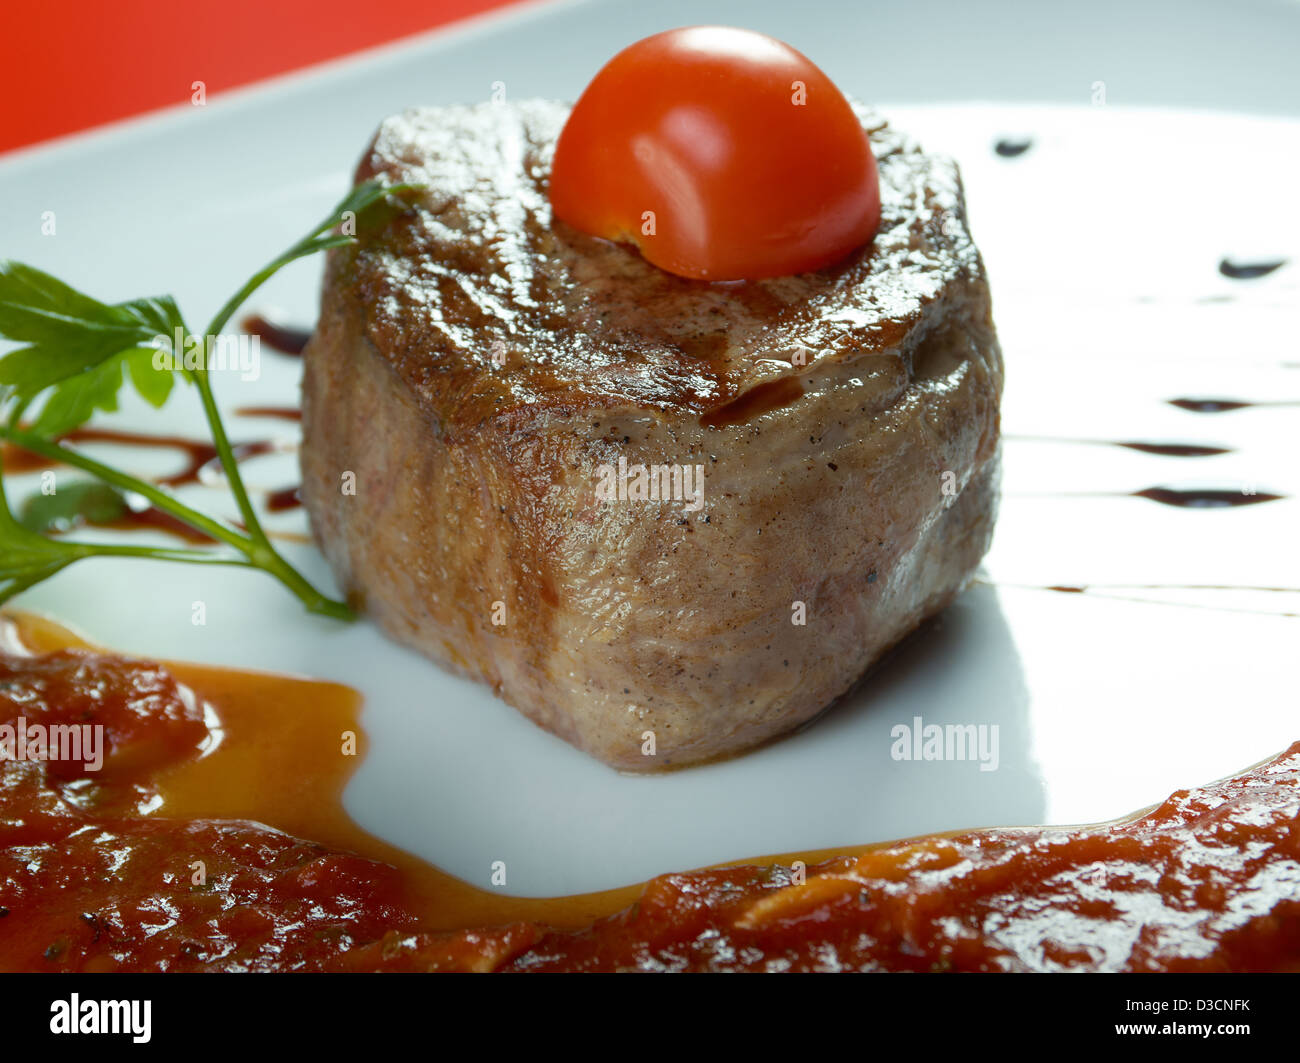 Grilled beef .Shallow depth-of-field. - Stock Image